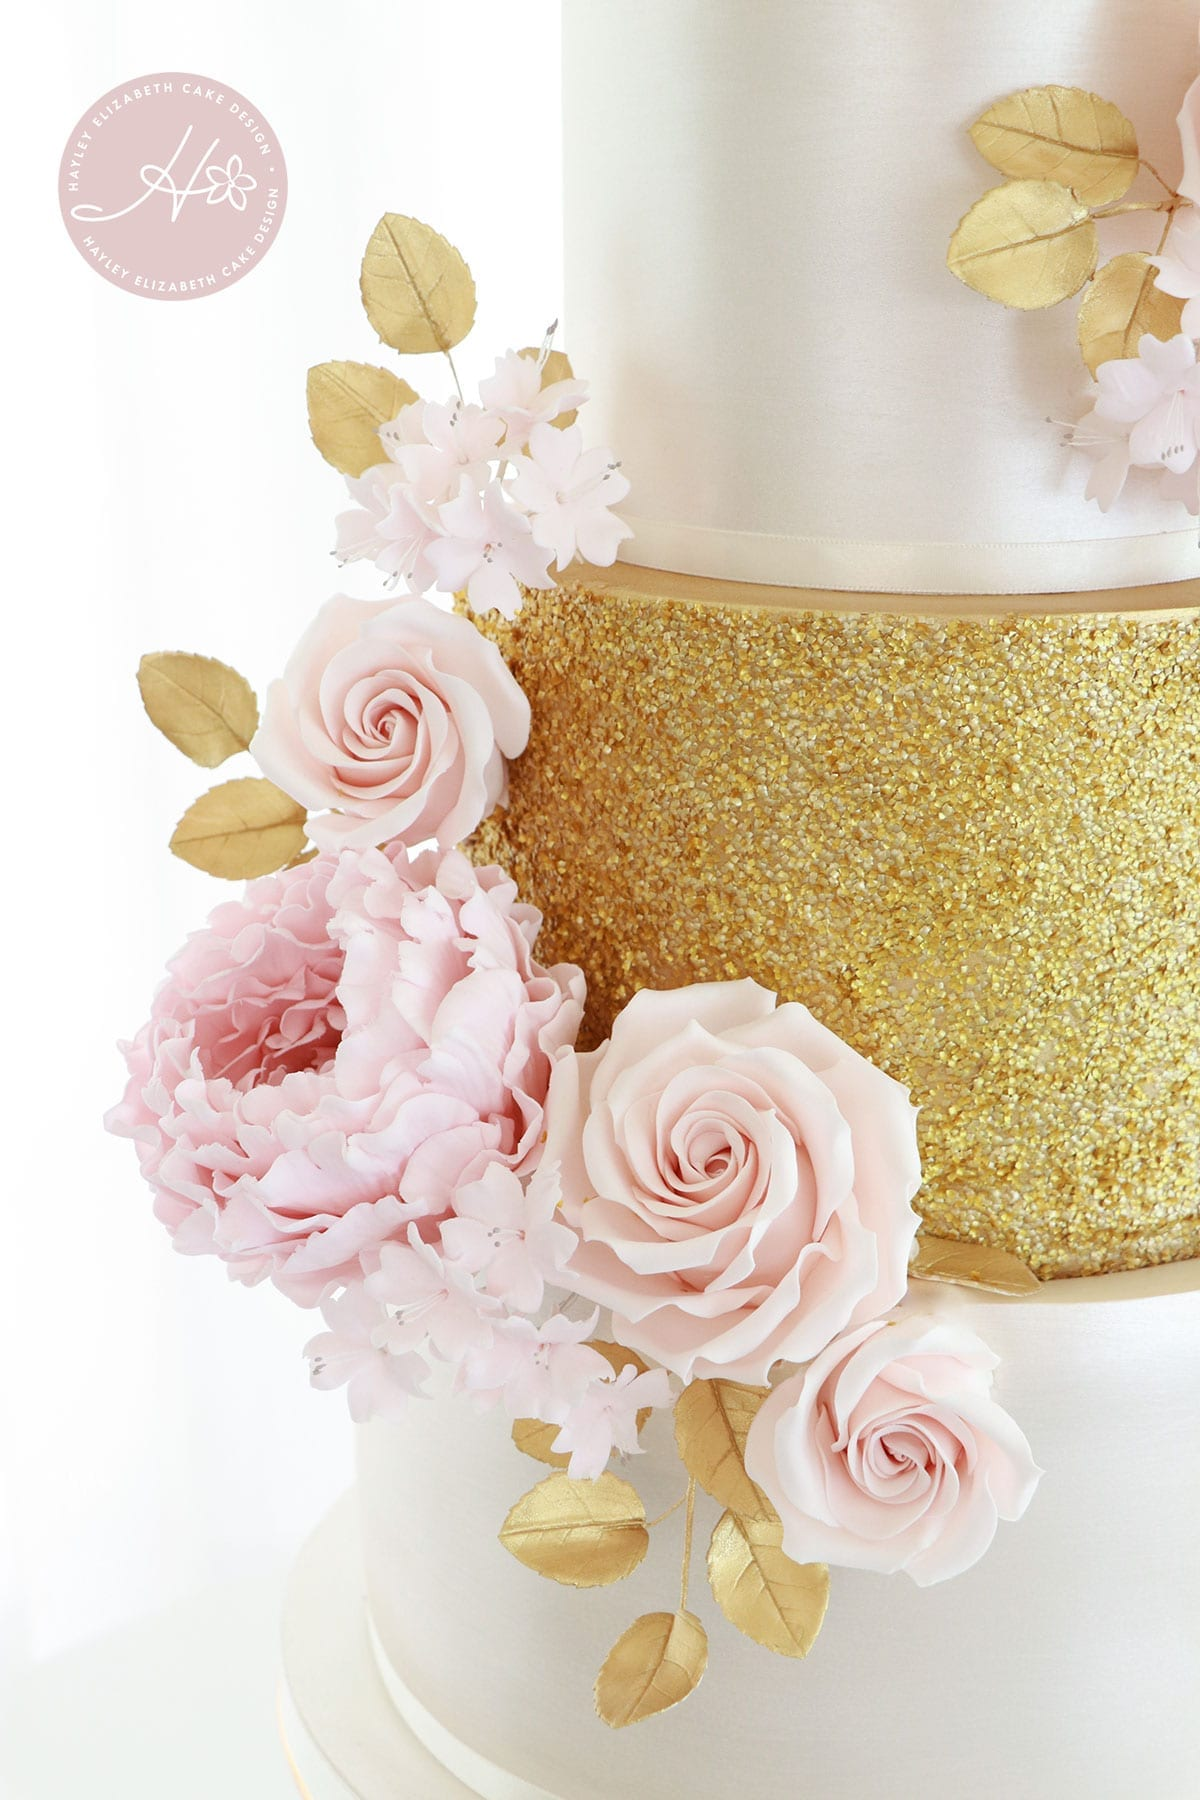 Luxury wedding cake from Hayley Elizabeth Cake Design, Dorset and Hampshire cake designer. Gold and blush wedding cake, gold sequin wedding cake, sugar flowers, white gold pink wedding cake, white and gold wedding cake, elegant wedding cake, wedding cake ideas.